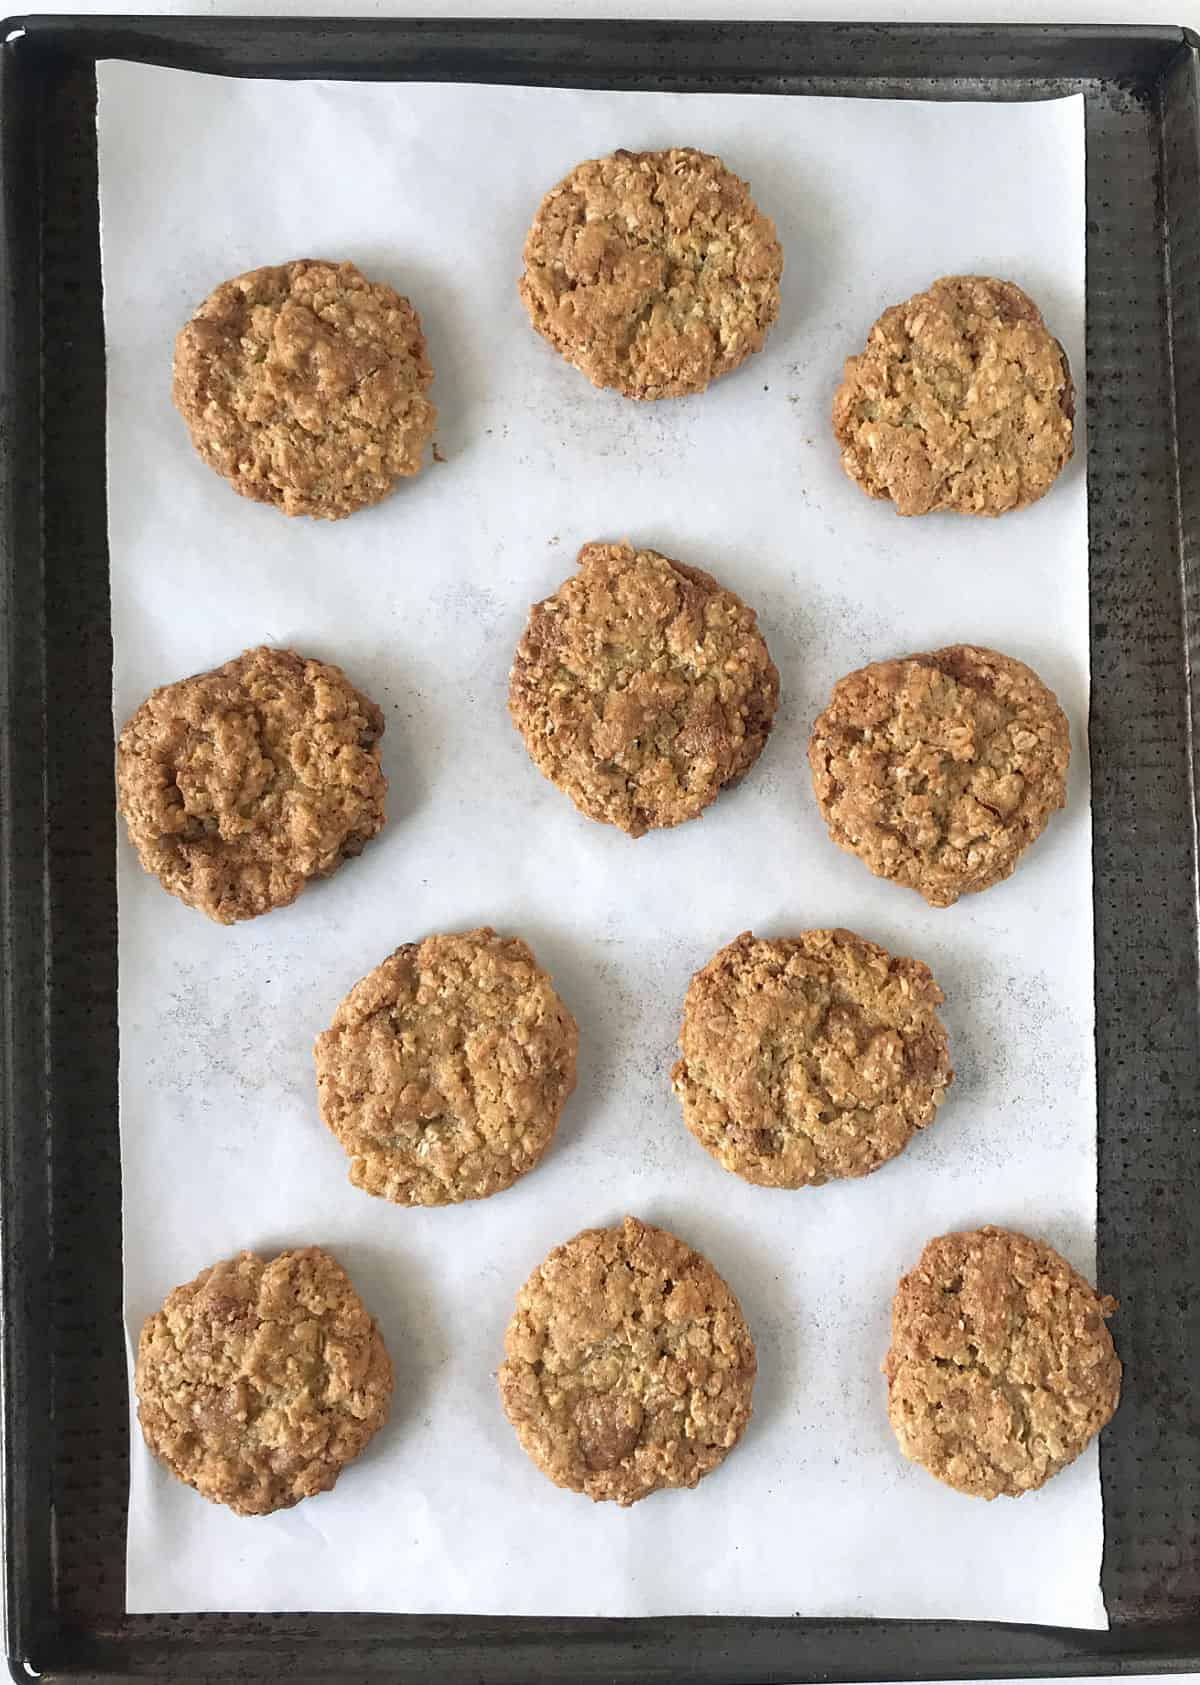 Baked oatmeal cookie on white parchment paper on metal sheet, top view